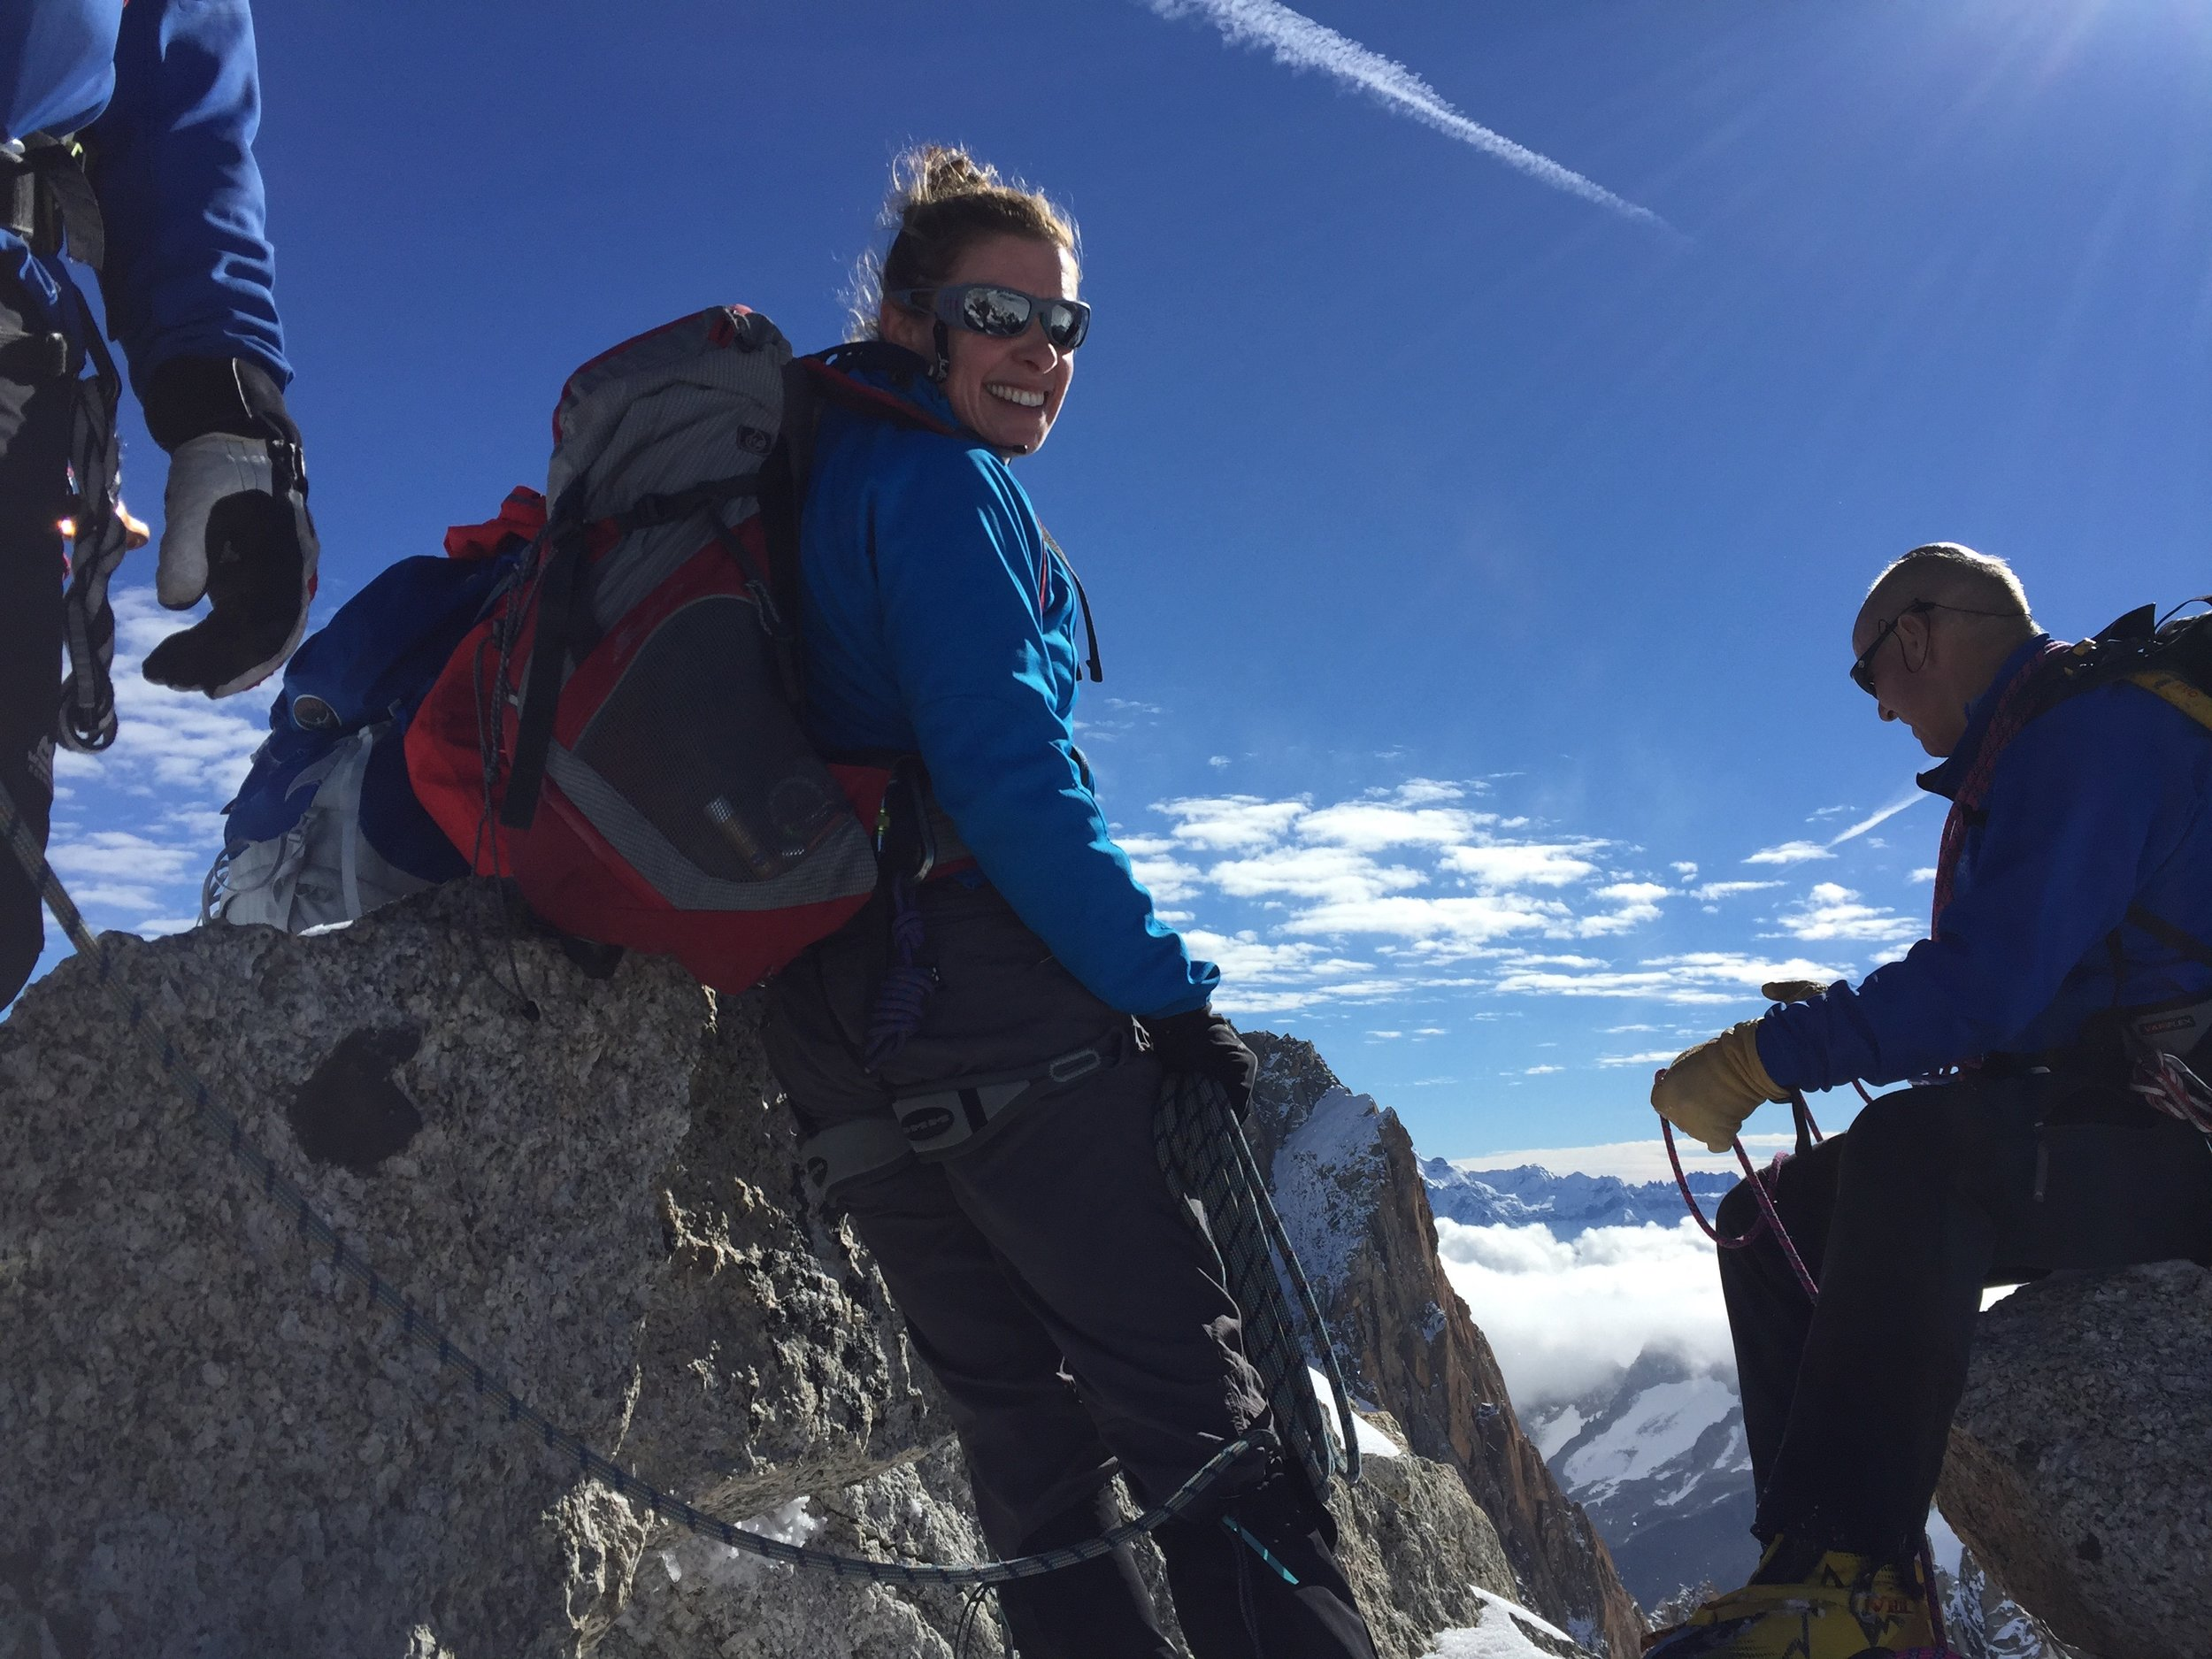 Kelda Wood in training on Grand Paradiso